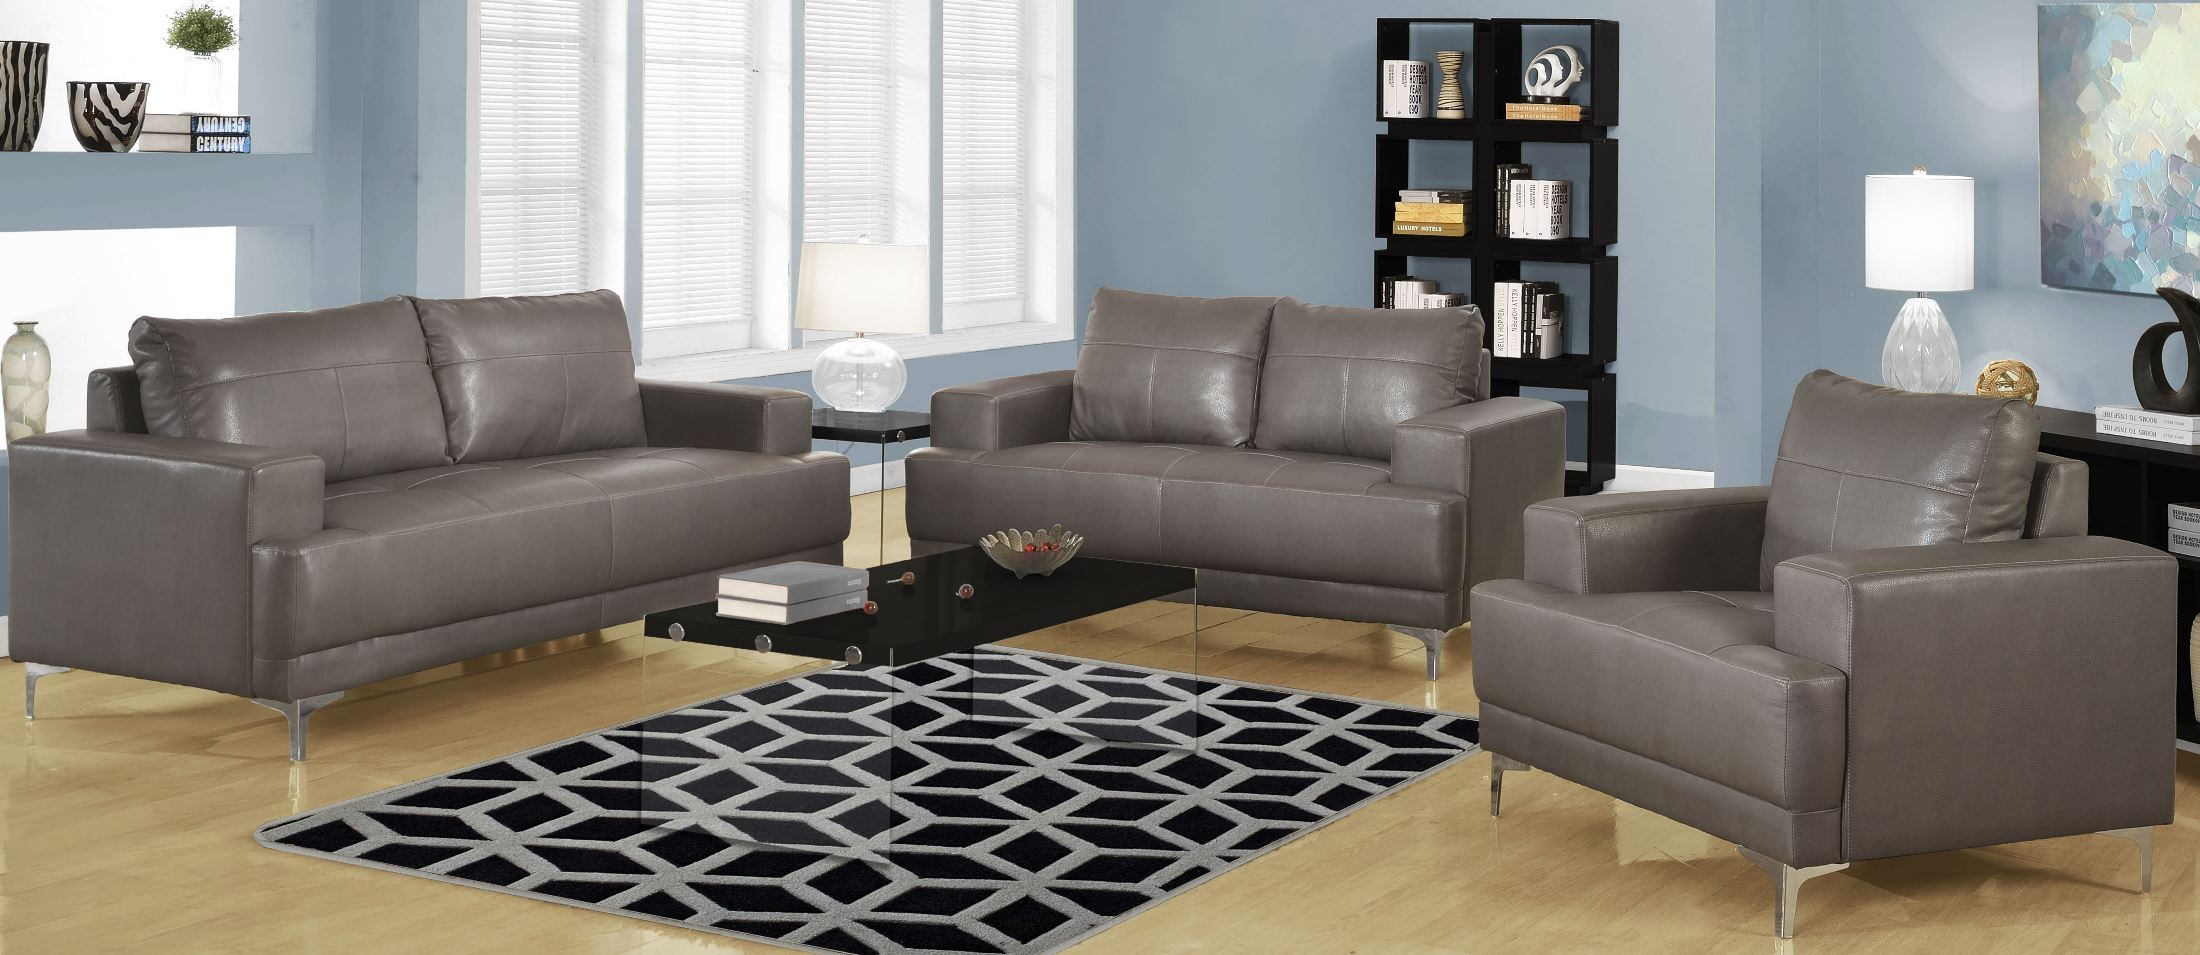 8603GY Charcoal Gray Bonded Leather Living Room Set From